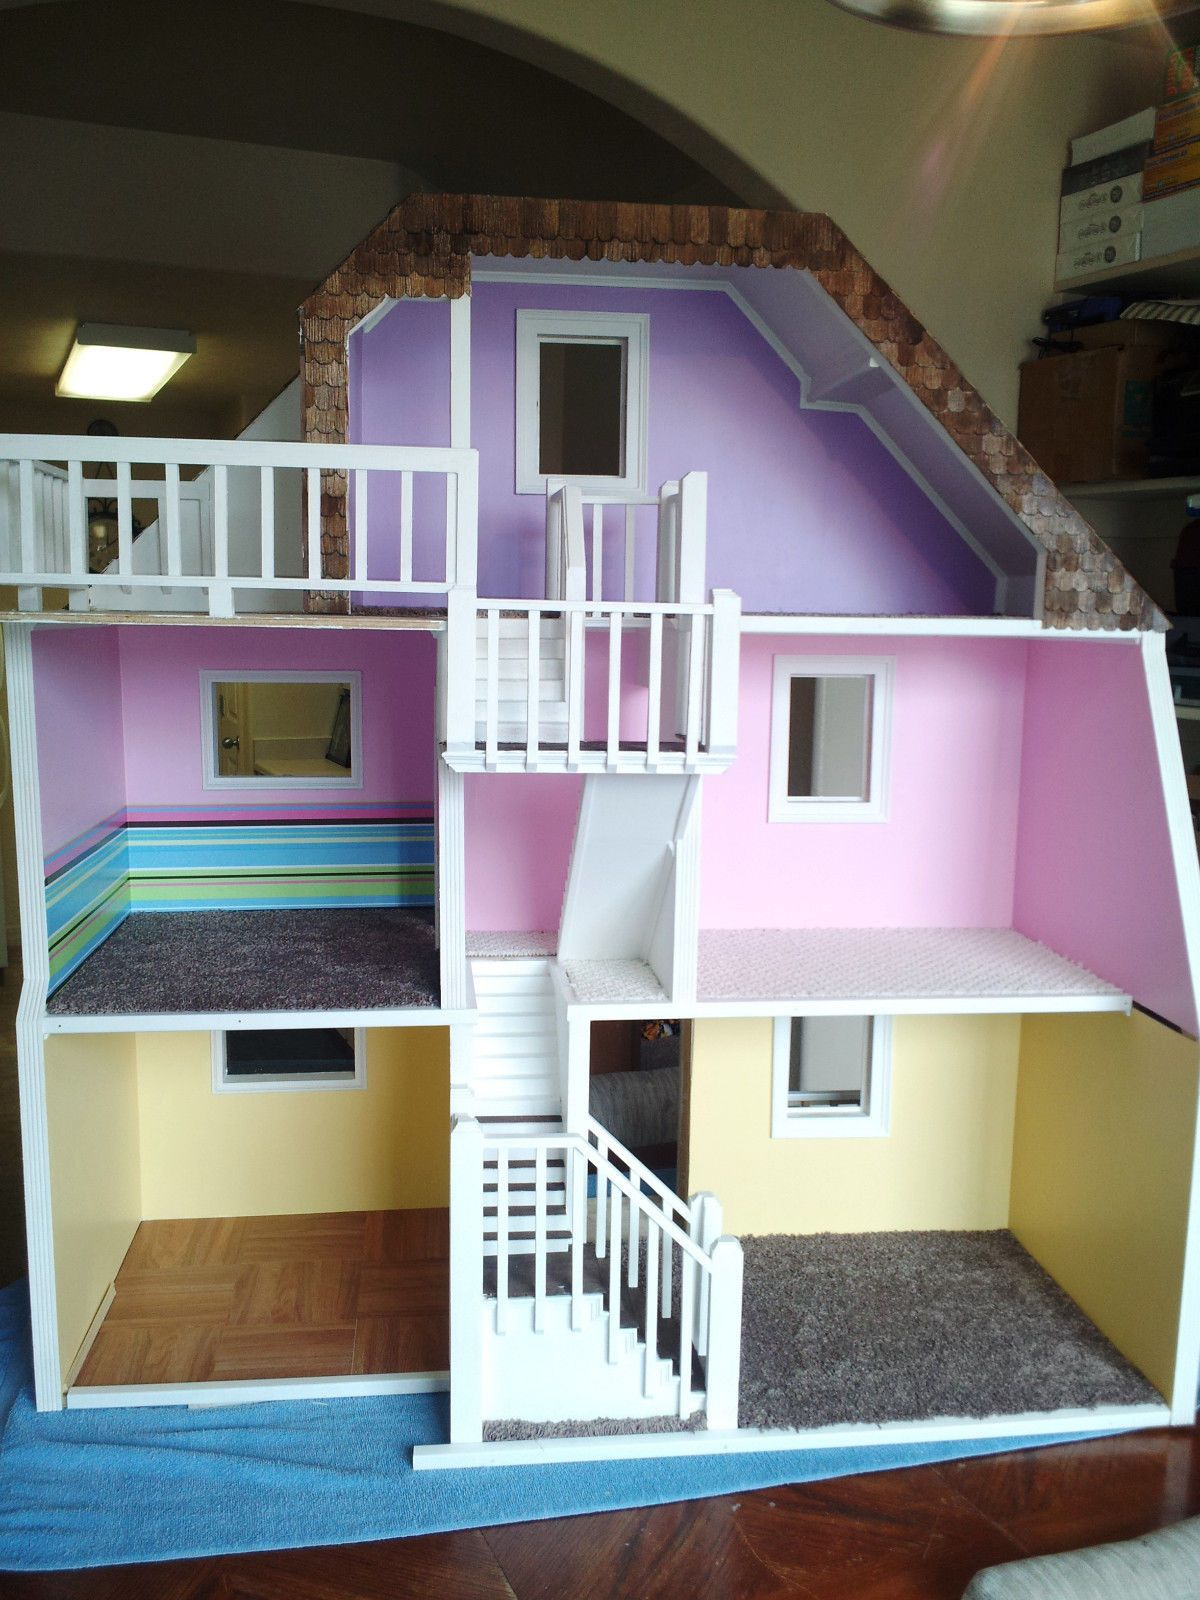 3 story custom made wood barbie doll house wooden dream for Dream house builder